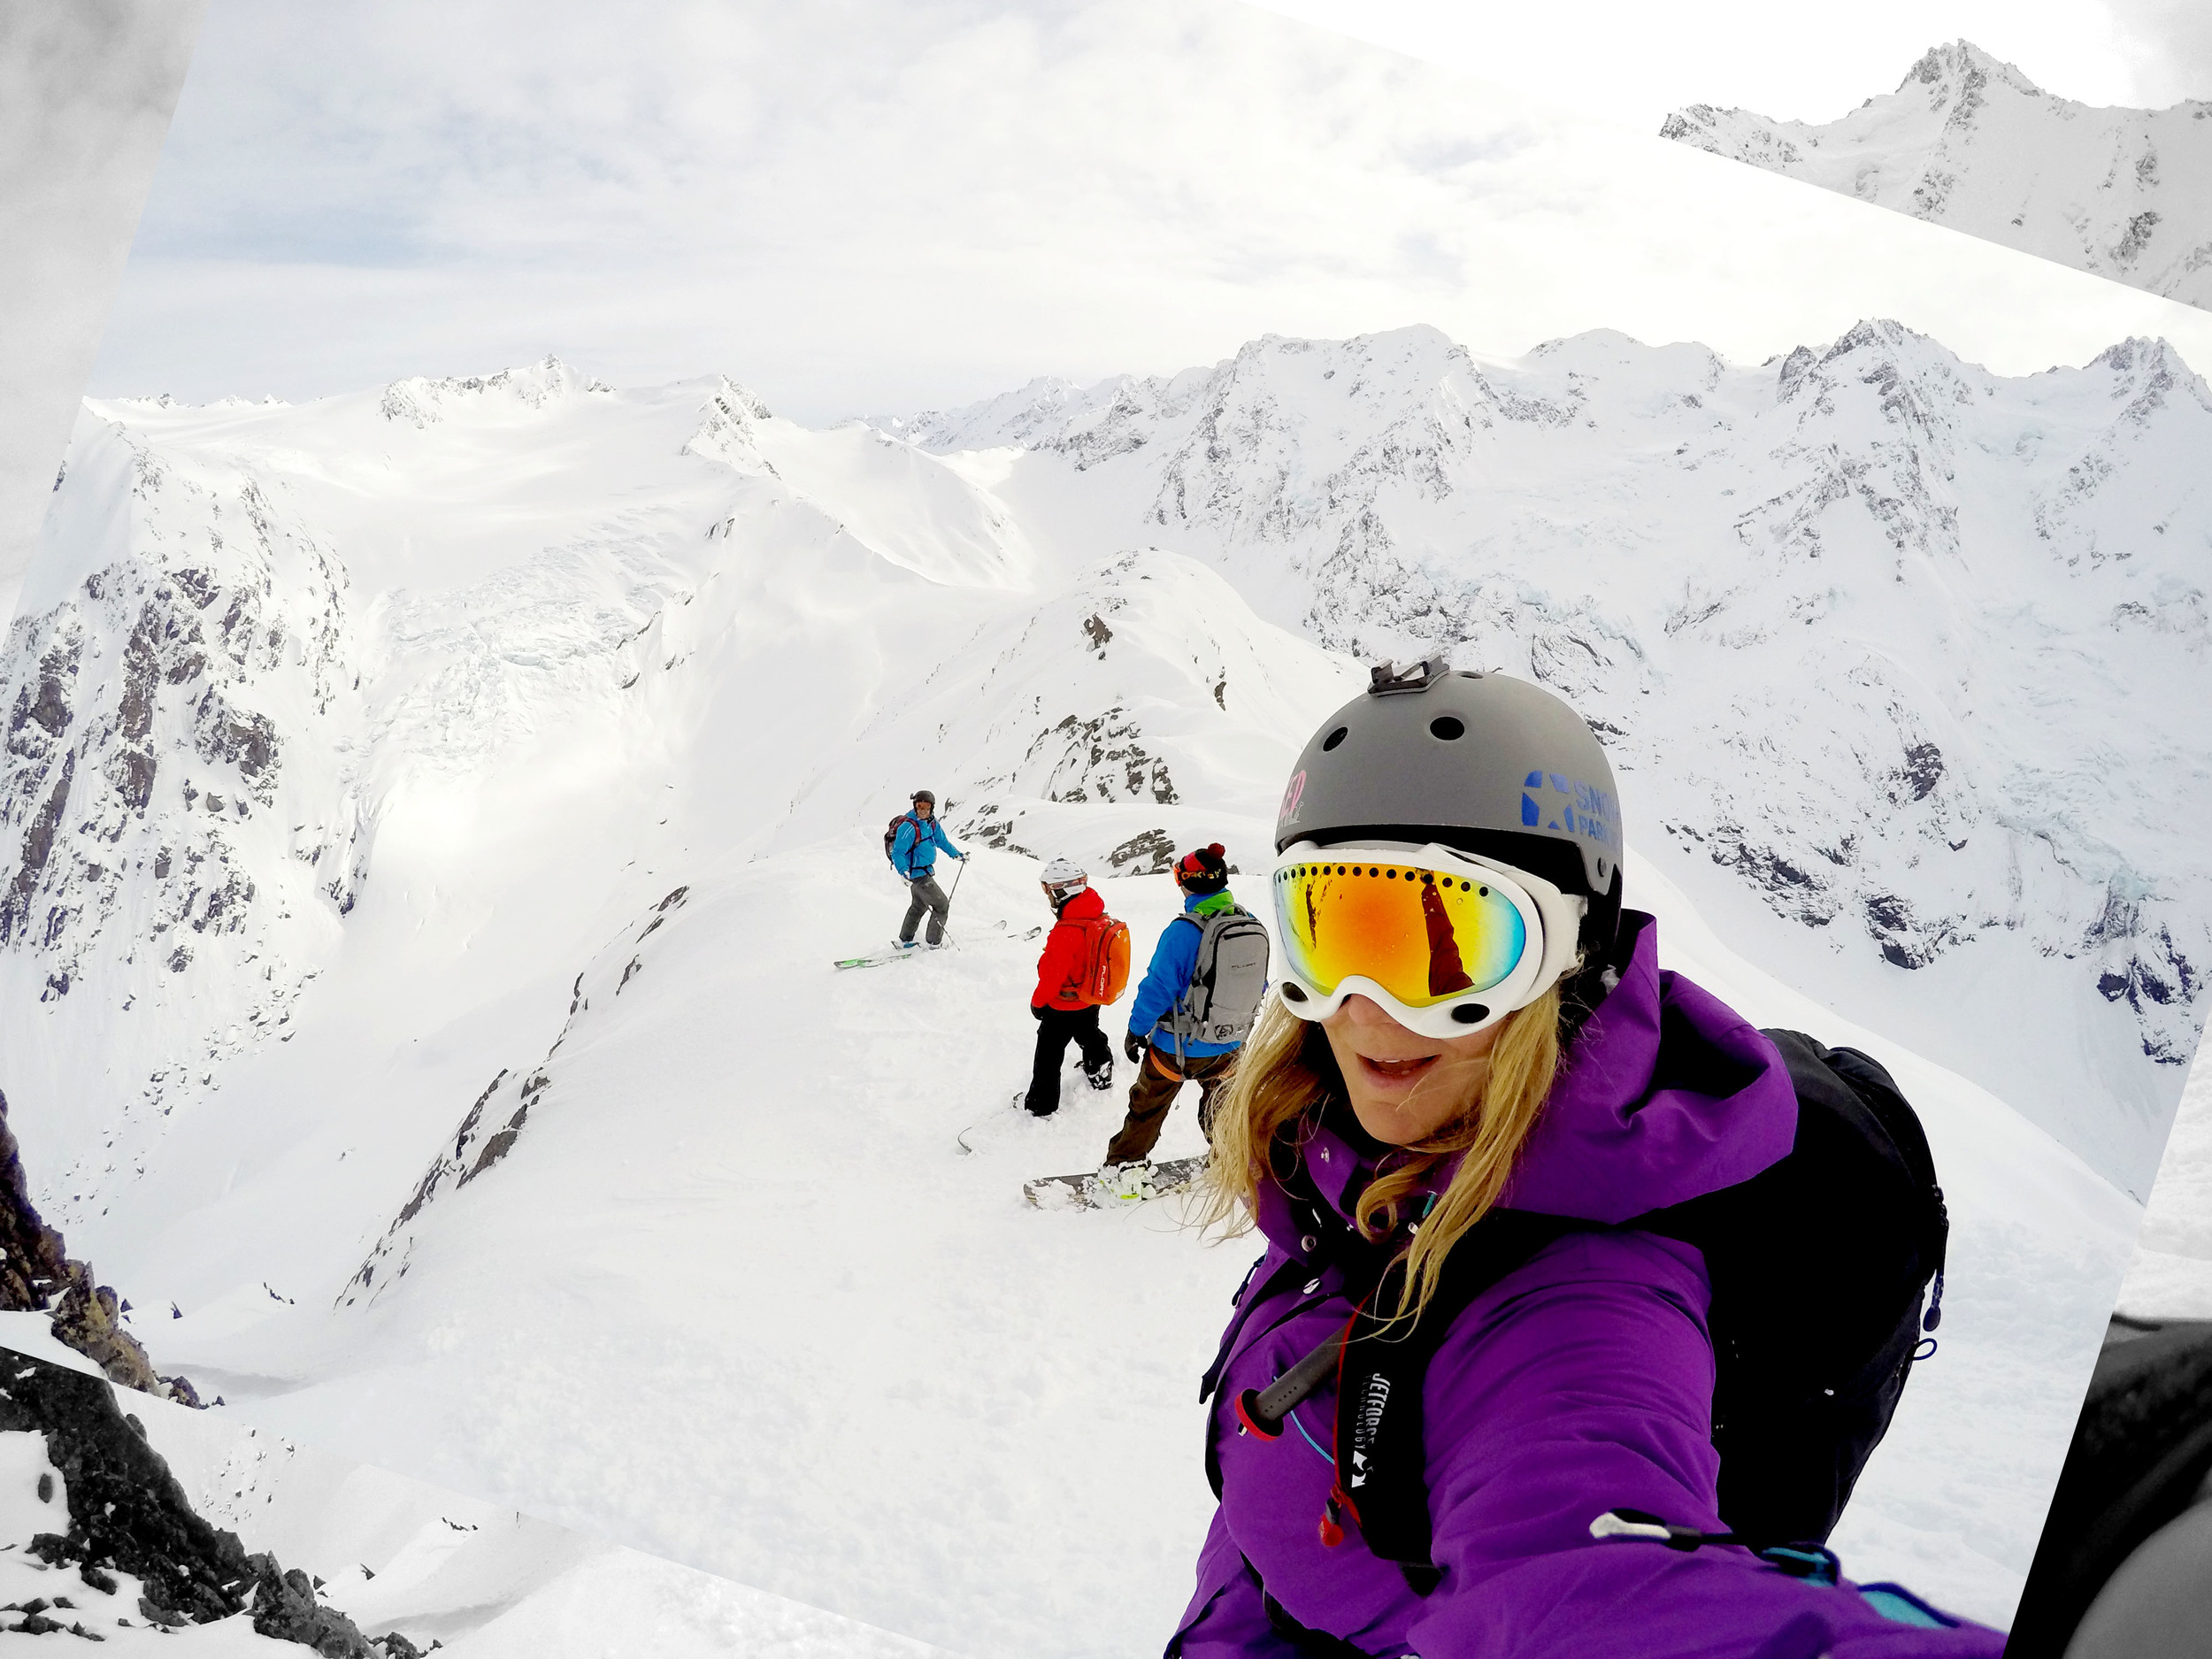 """The Chugach mountains, Alaska..... The Pacific Ocean behind me and 4000ft of steep, stable powder under my feet. I feel in love again!"" - Alexa Hohenberg"